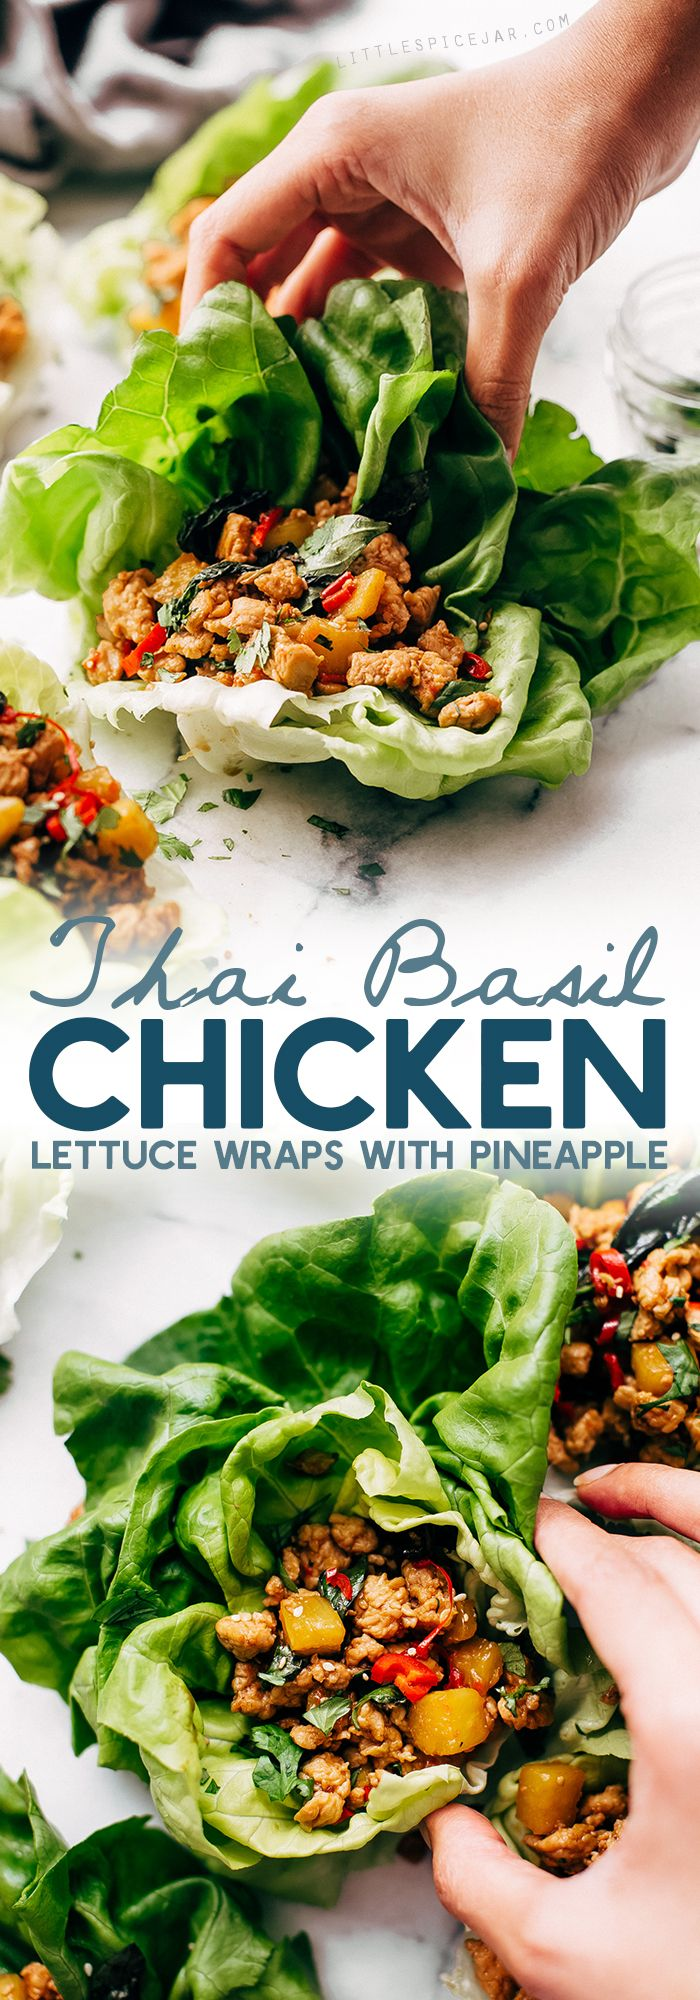 Springtime Basil Chicken Lettuce Wraps - basil chicken stuffed in lettuce wraps with garlic, red chilies, and sweet pineapple to tame that heat! The perfect protein-packed, low carb meal! #lettucewraps #thaibasilchicken #basilchicken #chickenlettucewraps | Littlespicejar.com